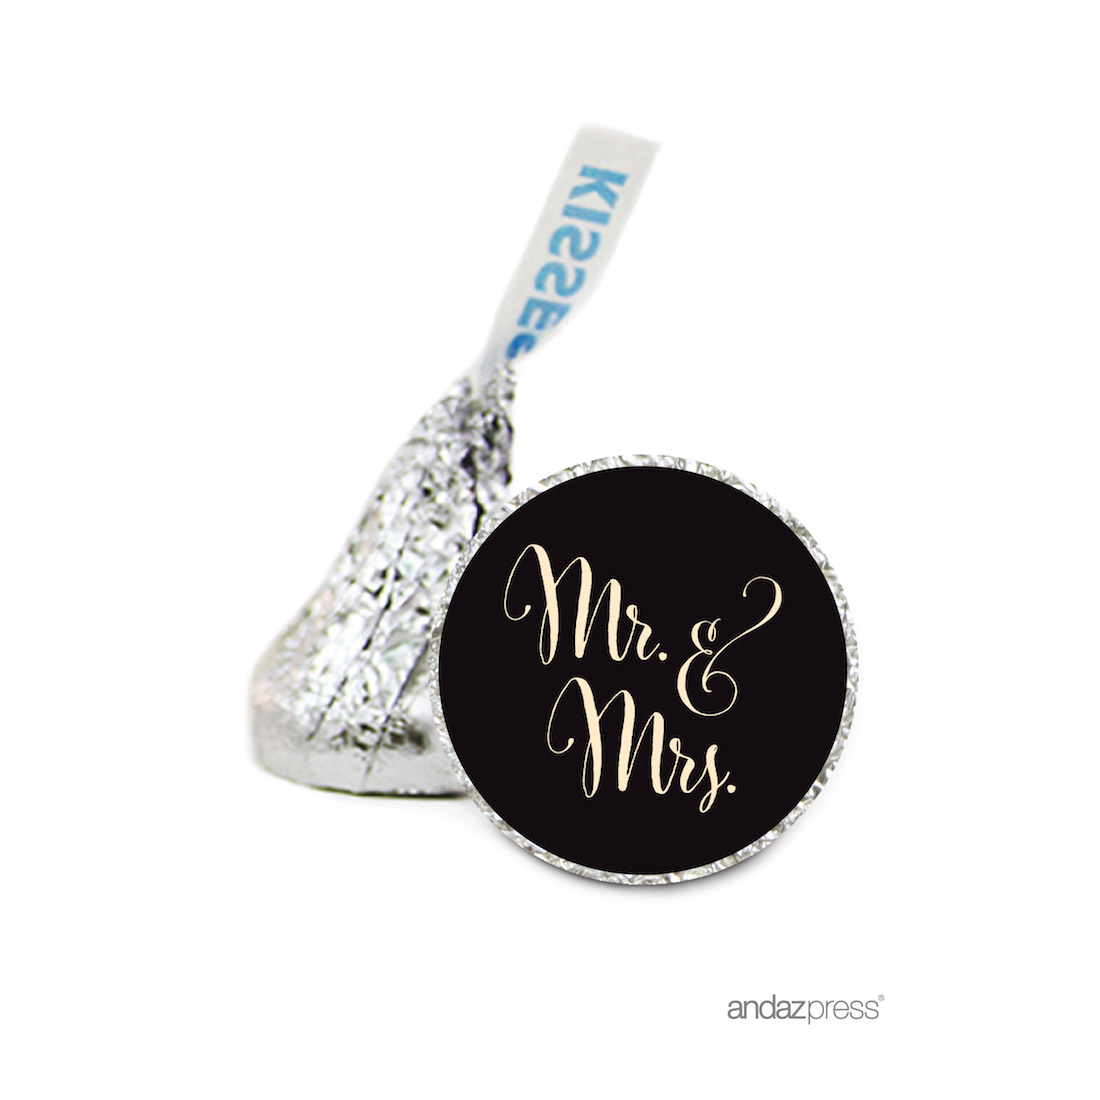 Andaz Press Chocolate Drop Labels Stickers, Wedding, Mr. & Mrs ...